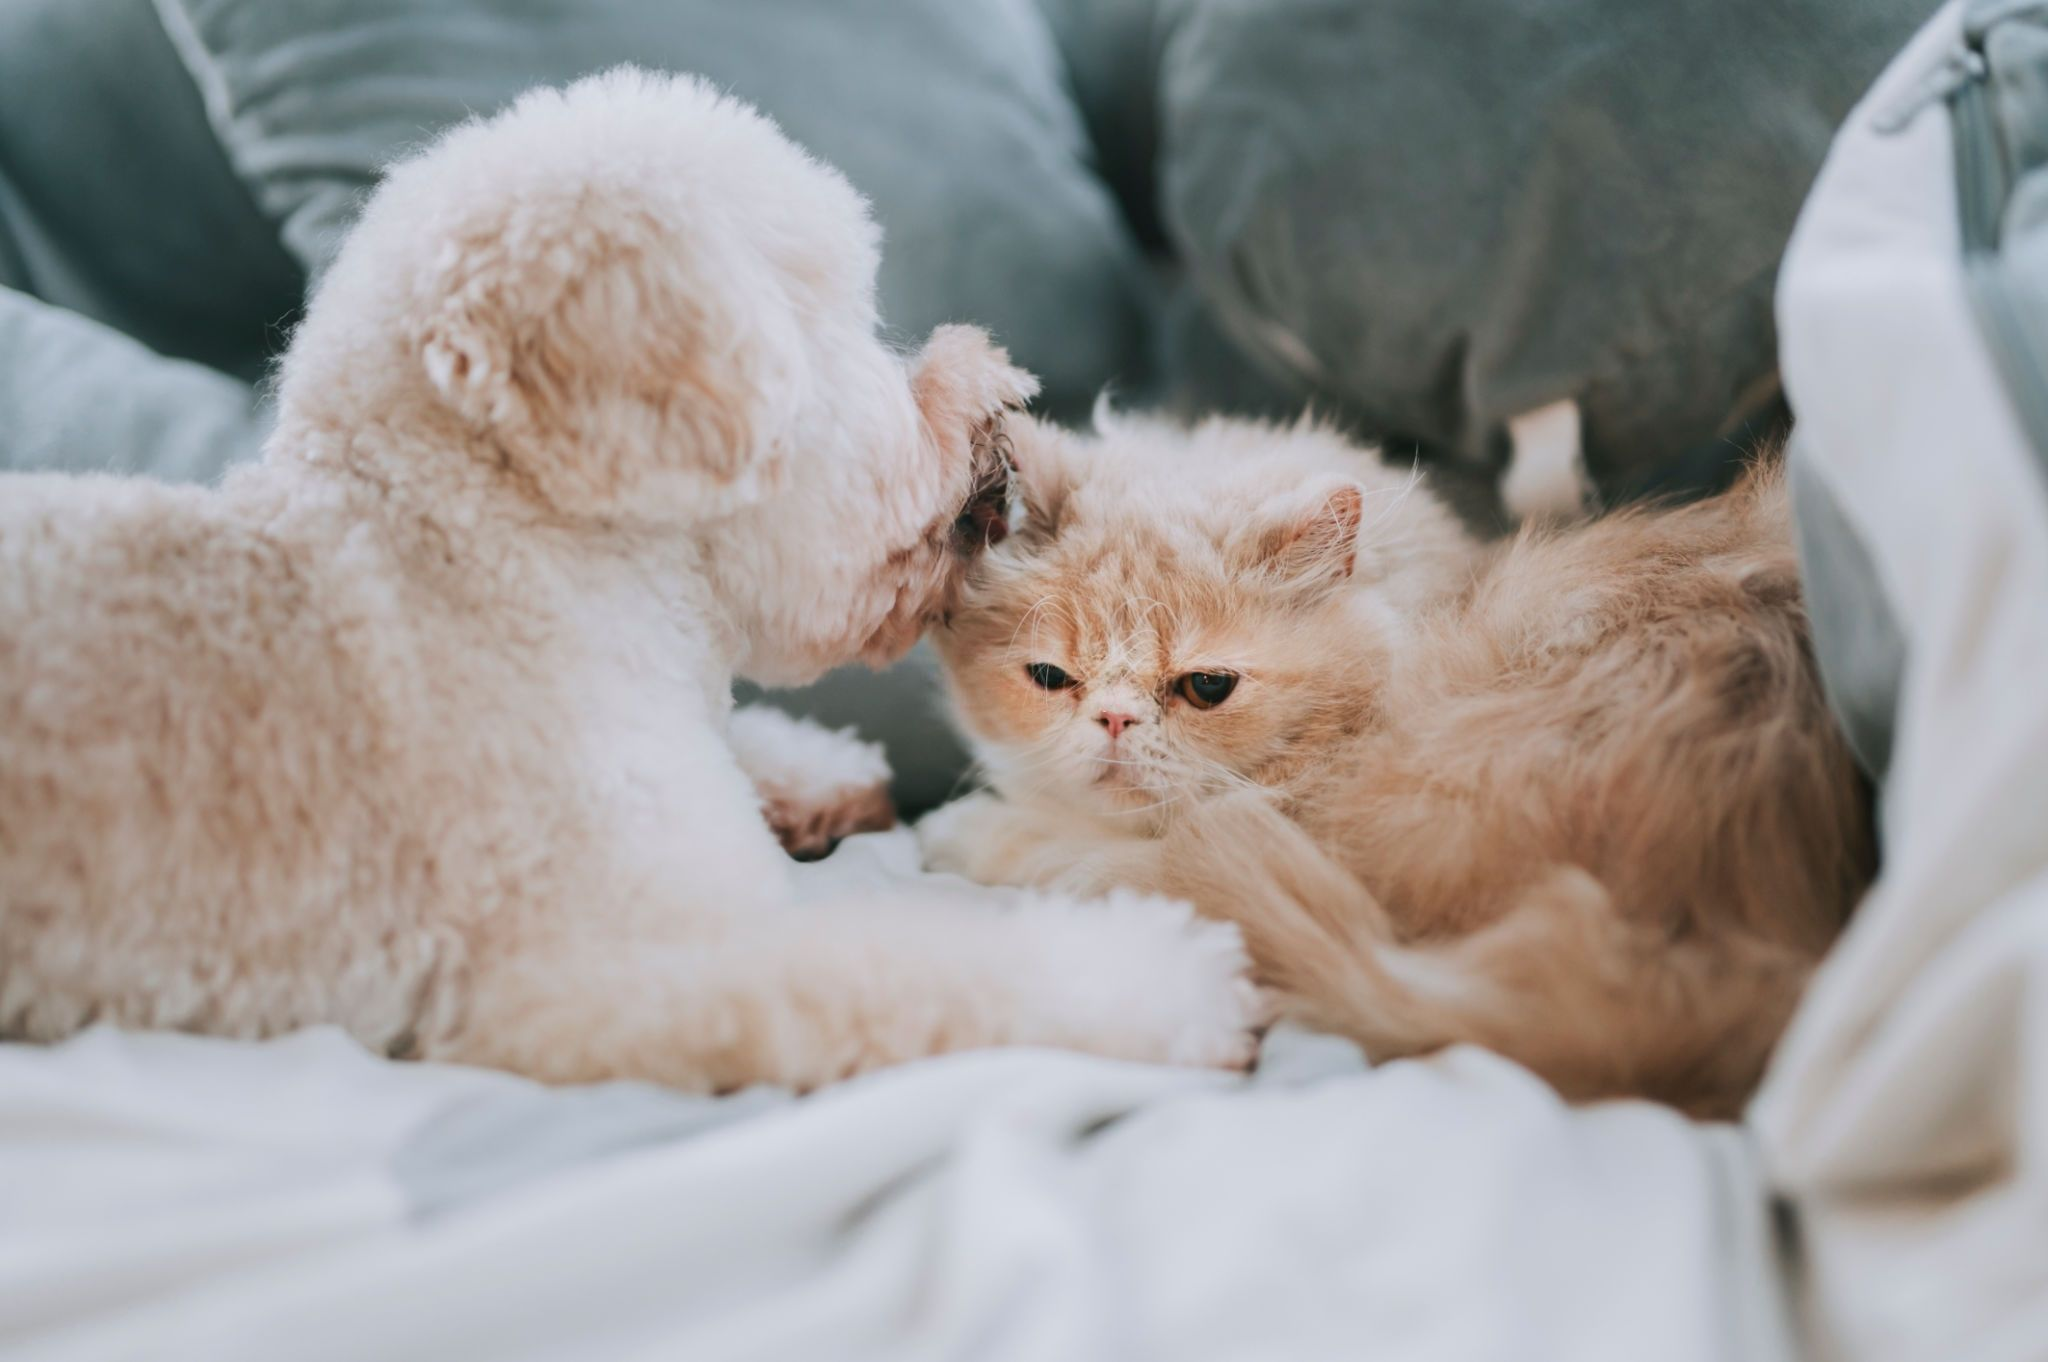 a toy poodle licking on a cat